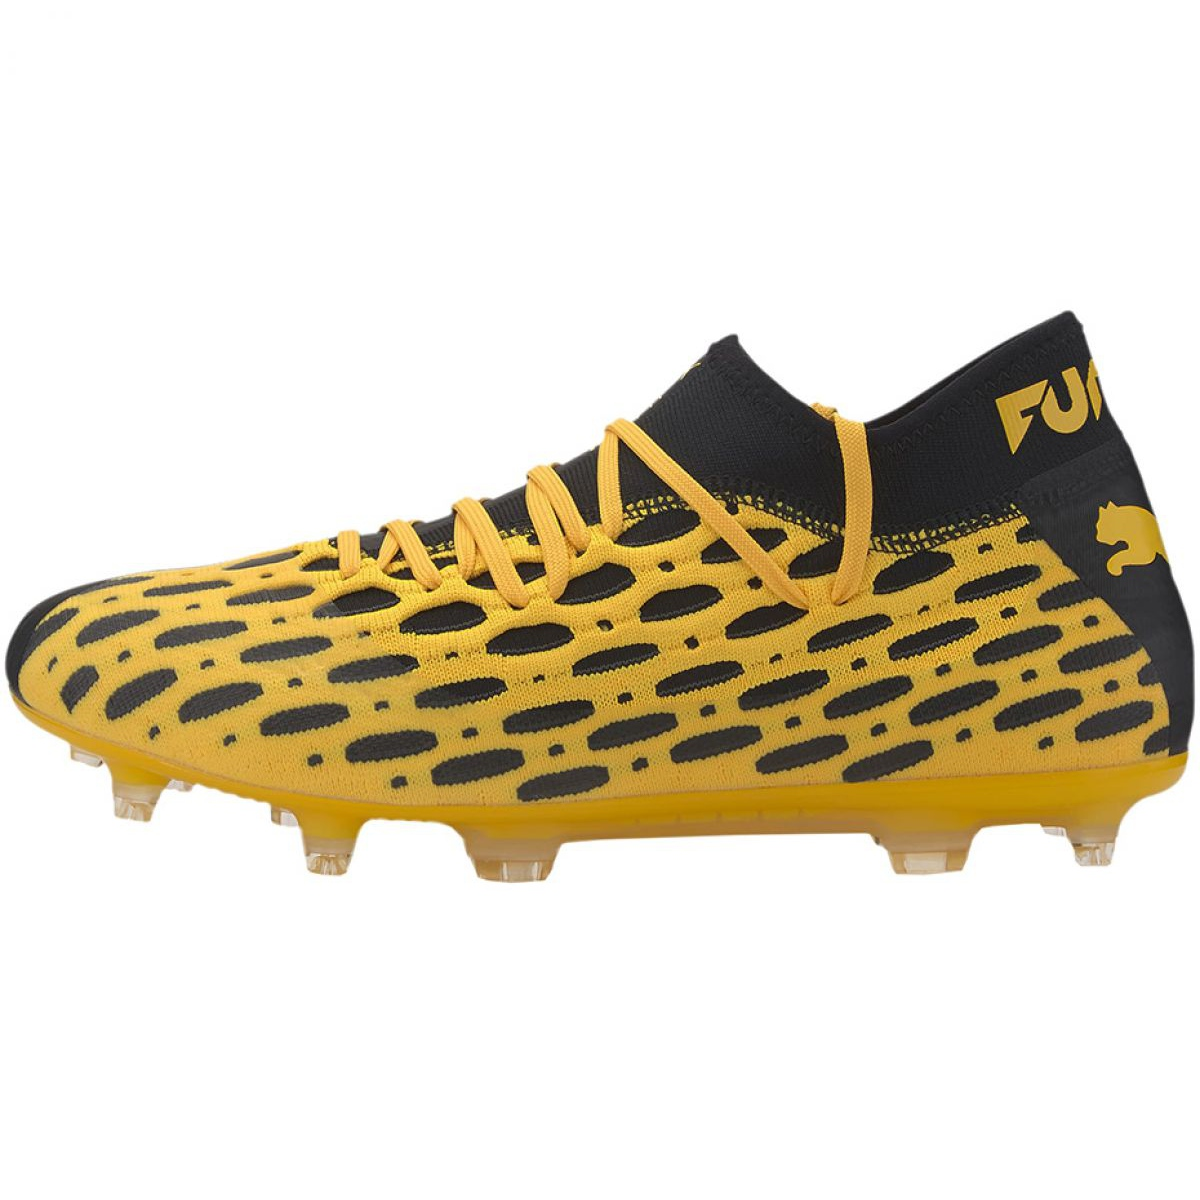 Details about Puma Future 5.2 Netfit Fg Ag M 105784 03 football shoes  yellow yellow